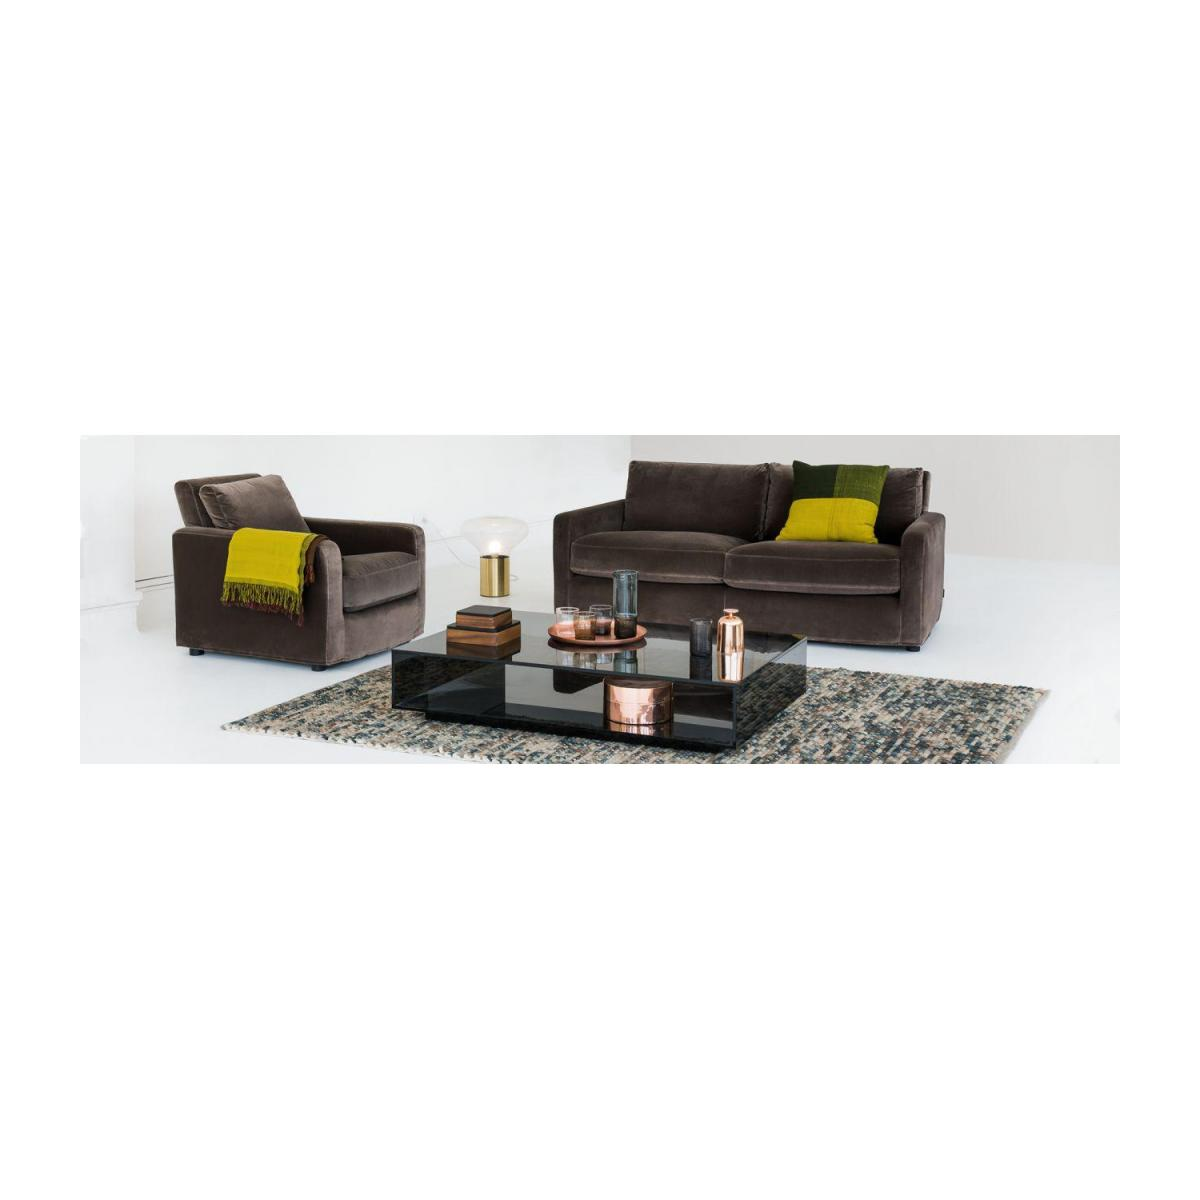 Compact leather sofa n°2